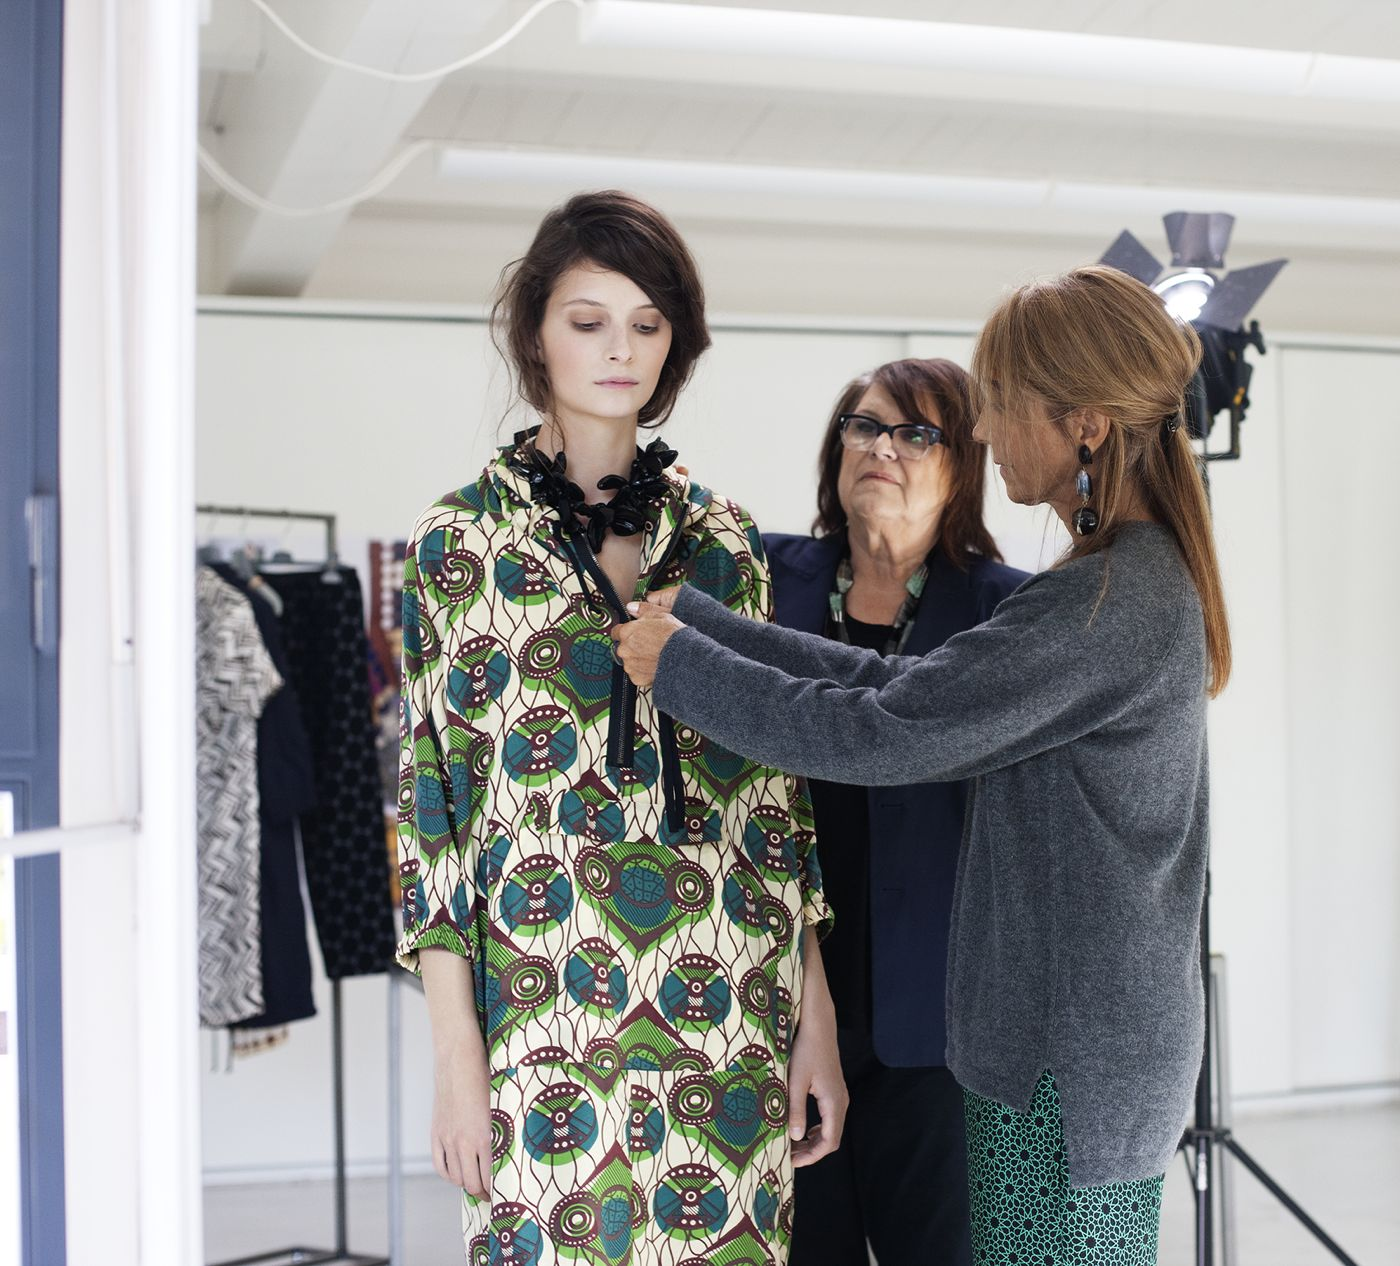 Marni for H&M Working process